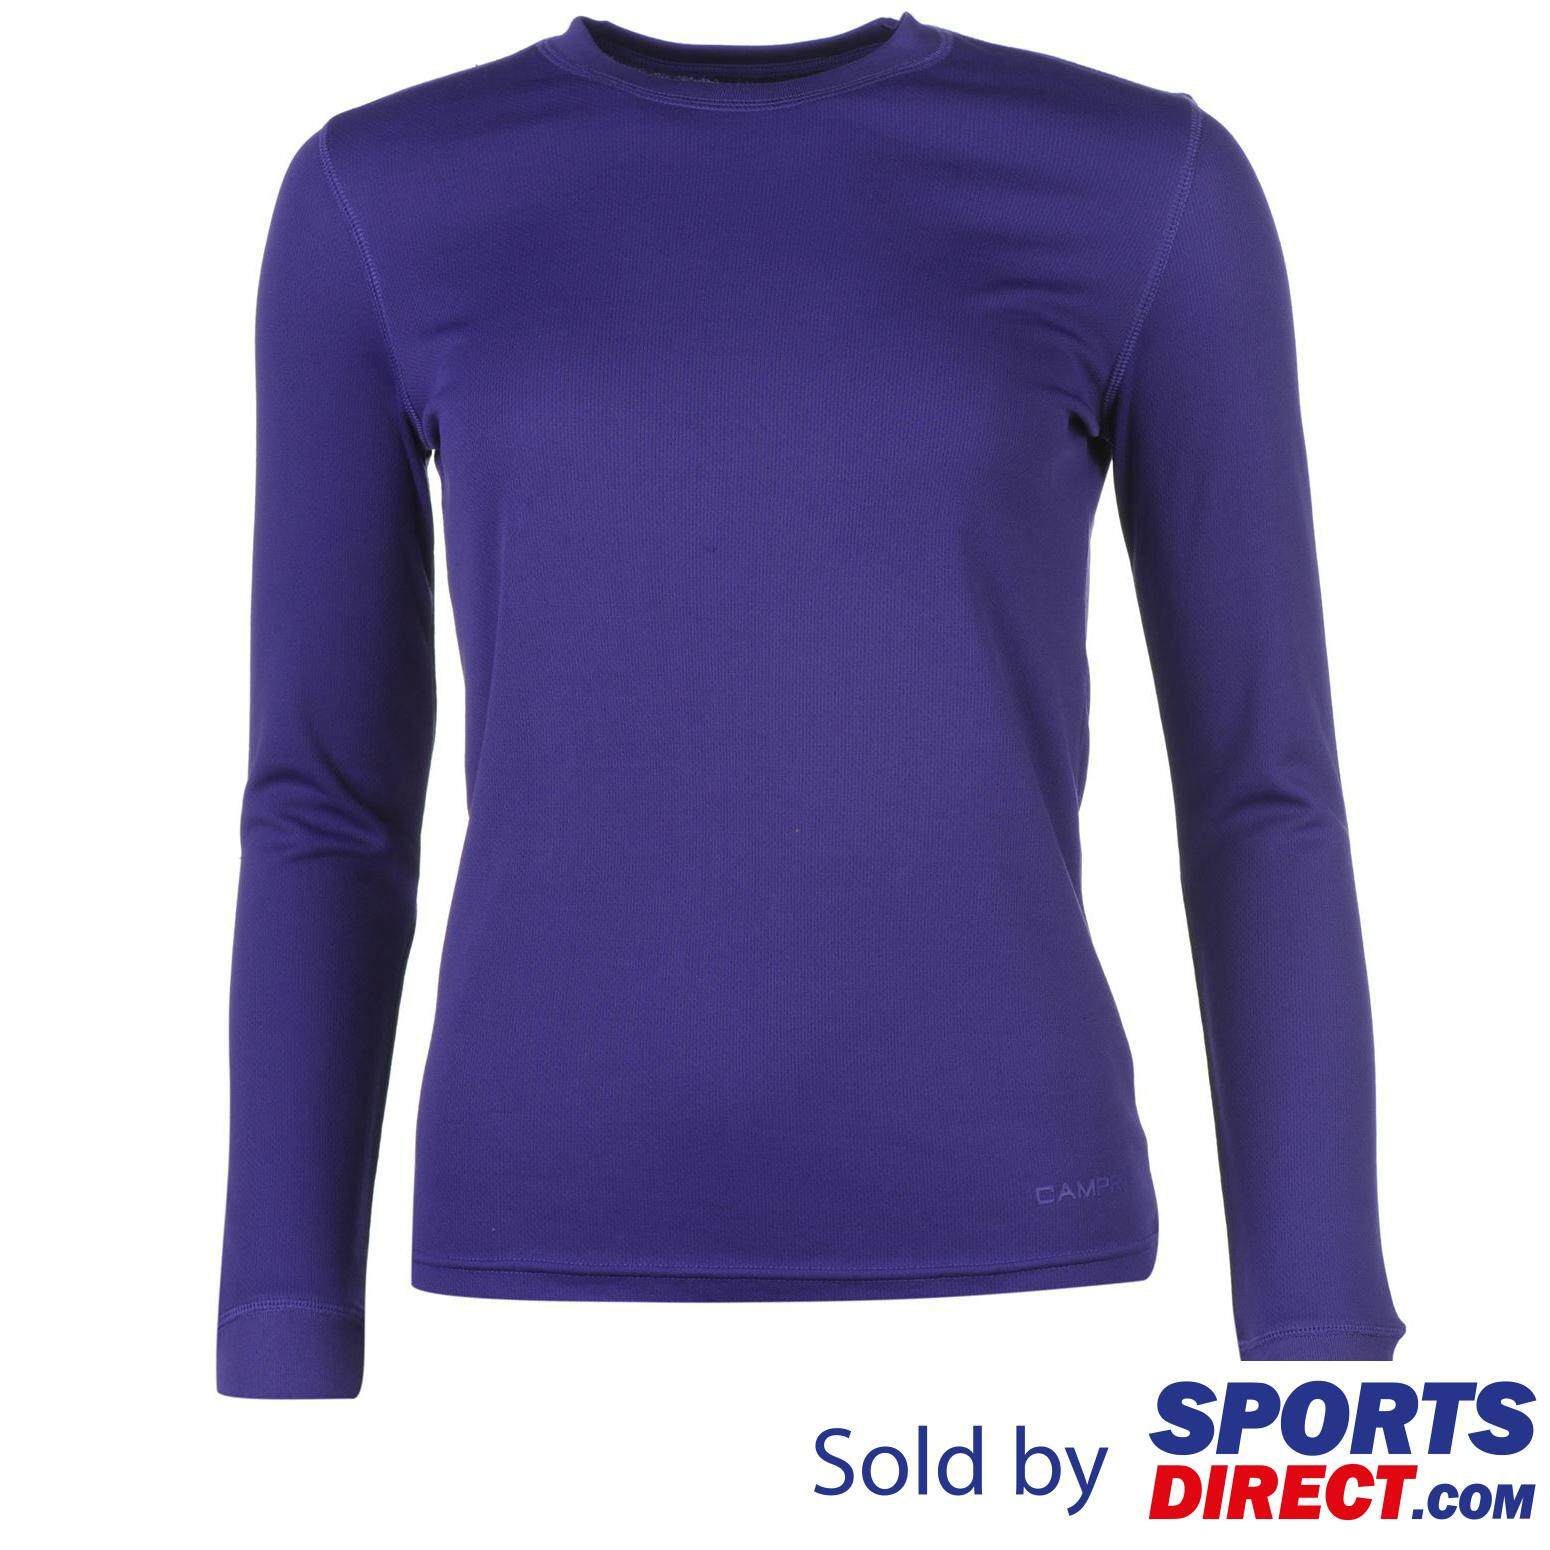 Campri Womens Thermal Top (purple) By Sports Direct Mst Sdn Bhd.